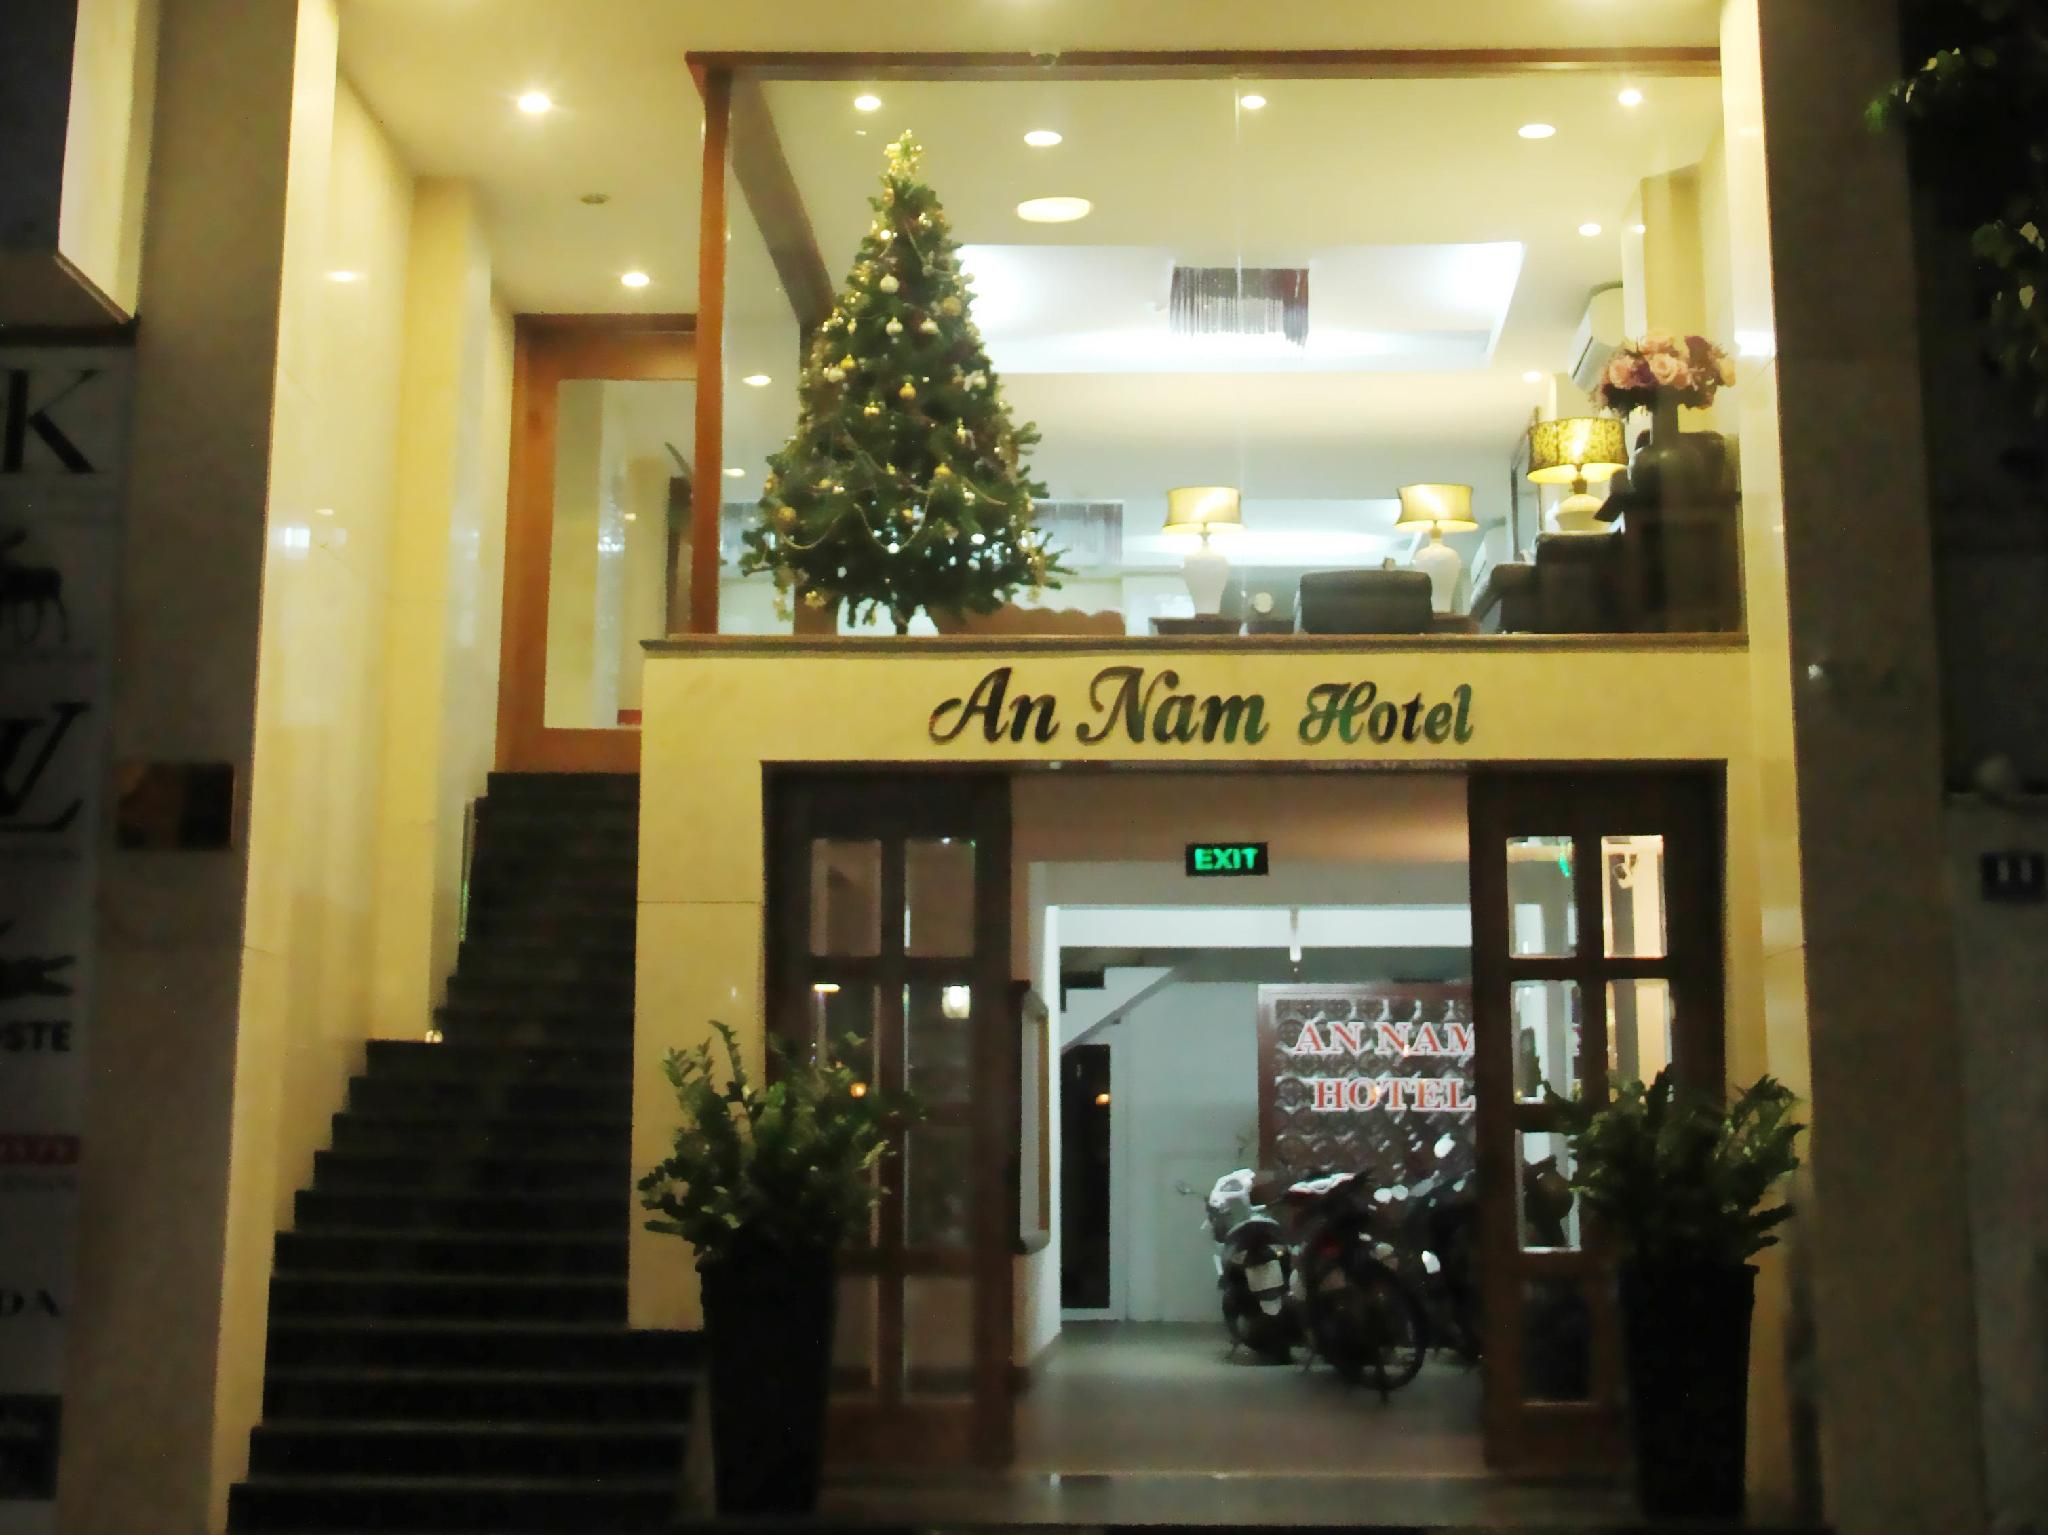 Hotell An Nam Hotel